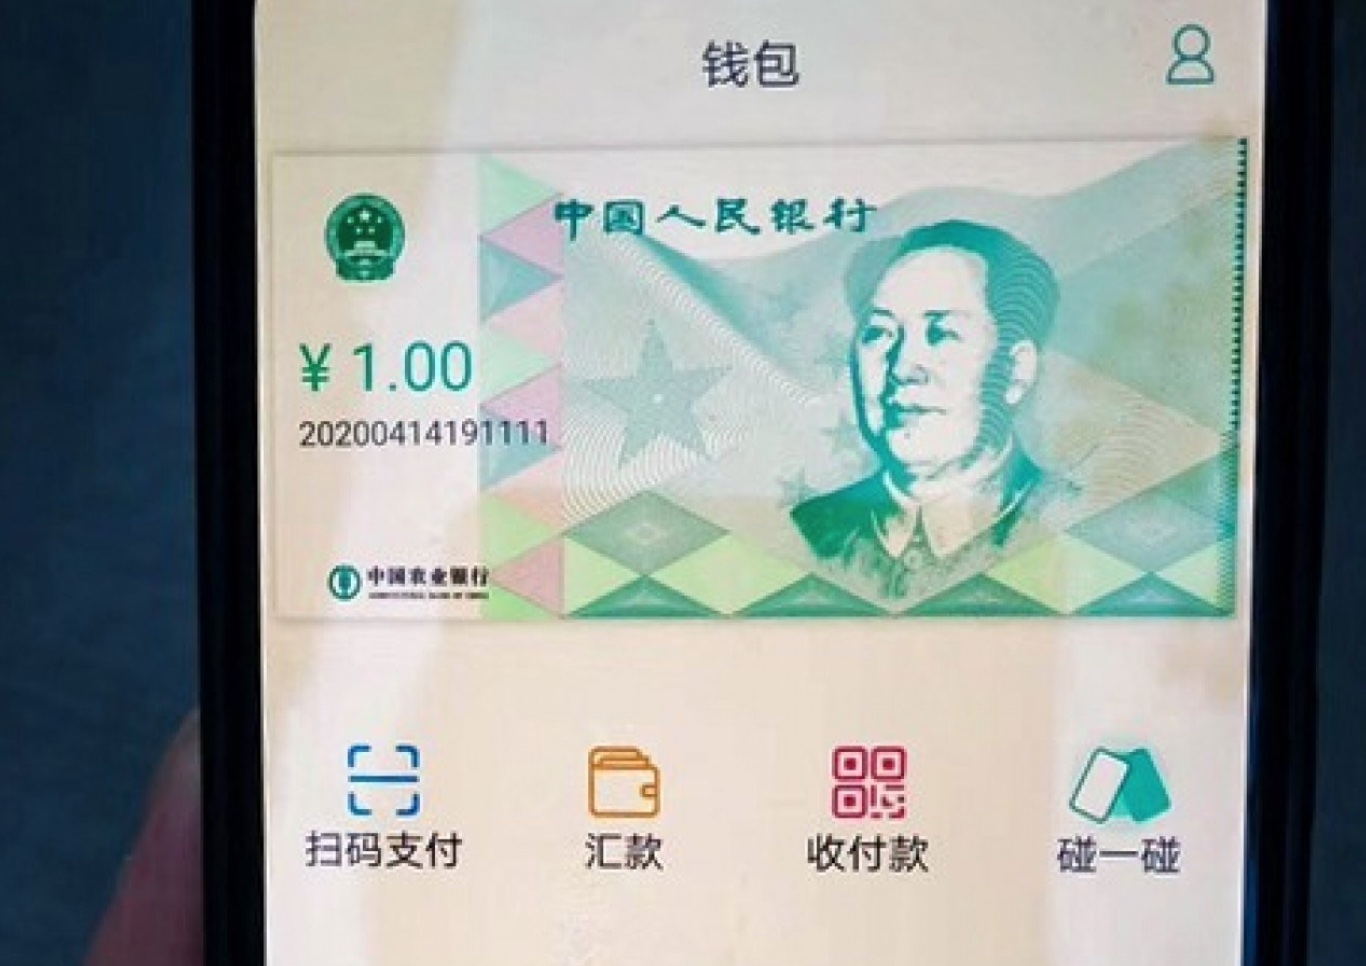 Shenzhen gas stations accept digital RMB payments on pilot basis-cnTechPost